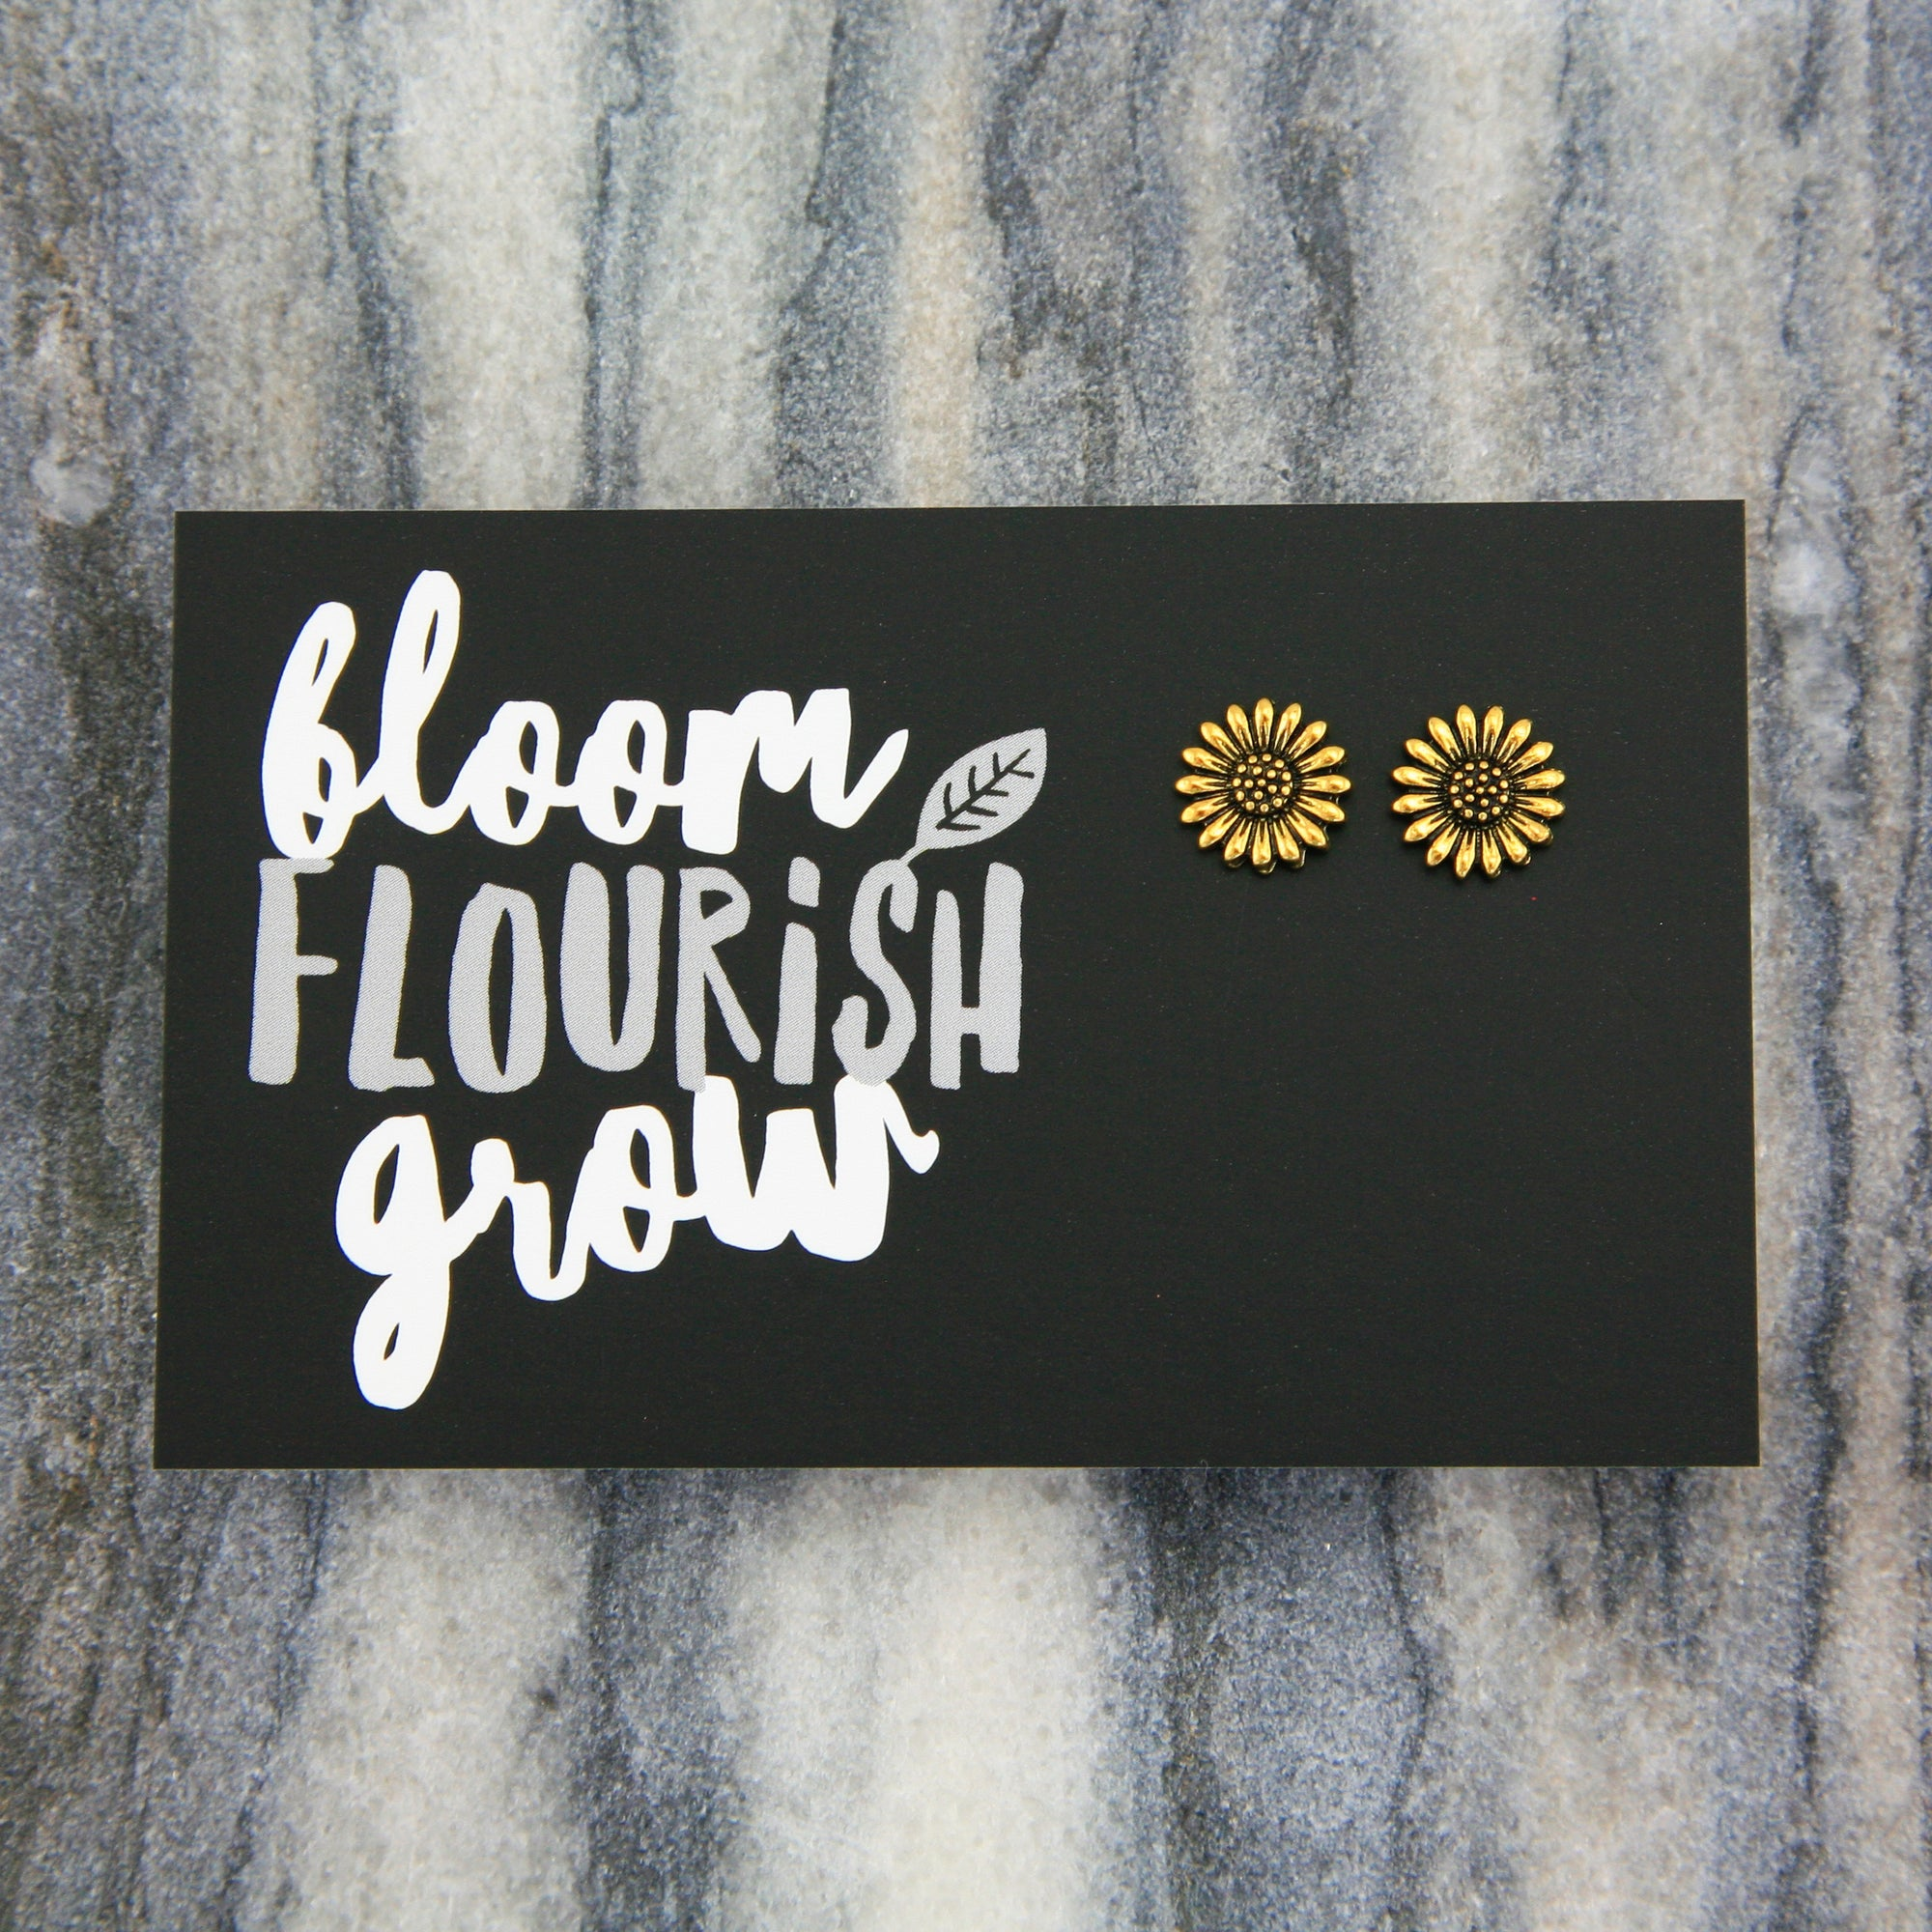 Forever Spring - BLOOM FLOURISH GROW! Sunflower Earring Studs - Bright Gold (9702)